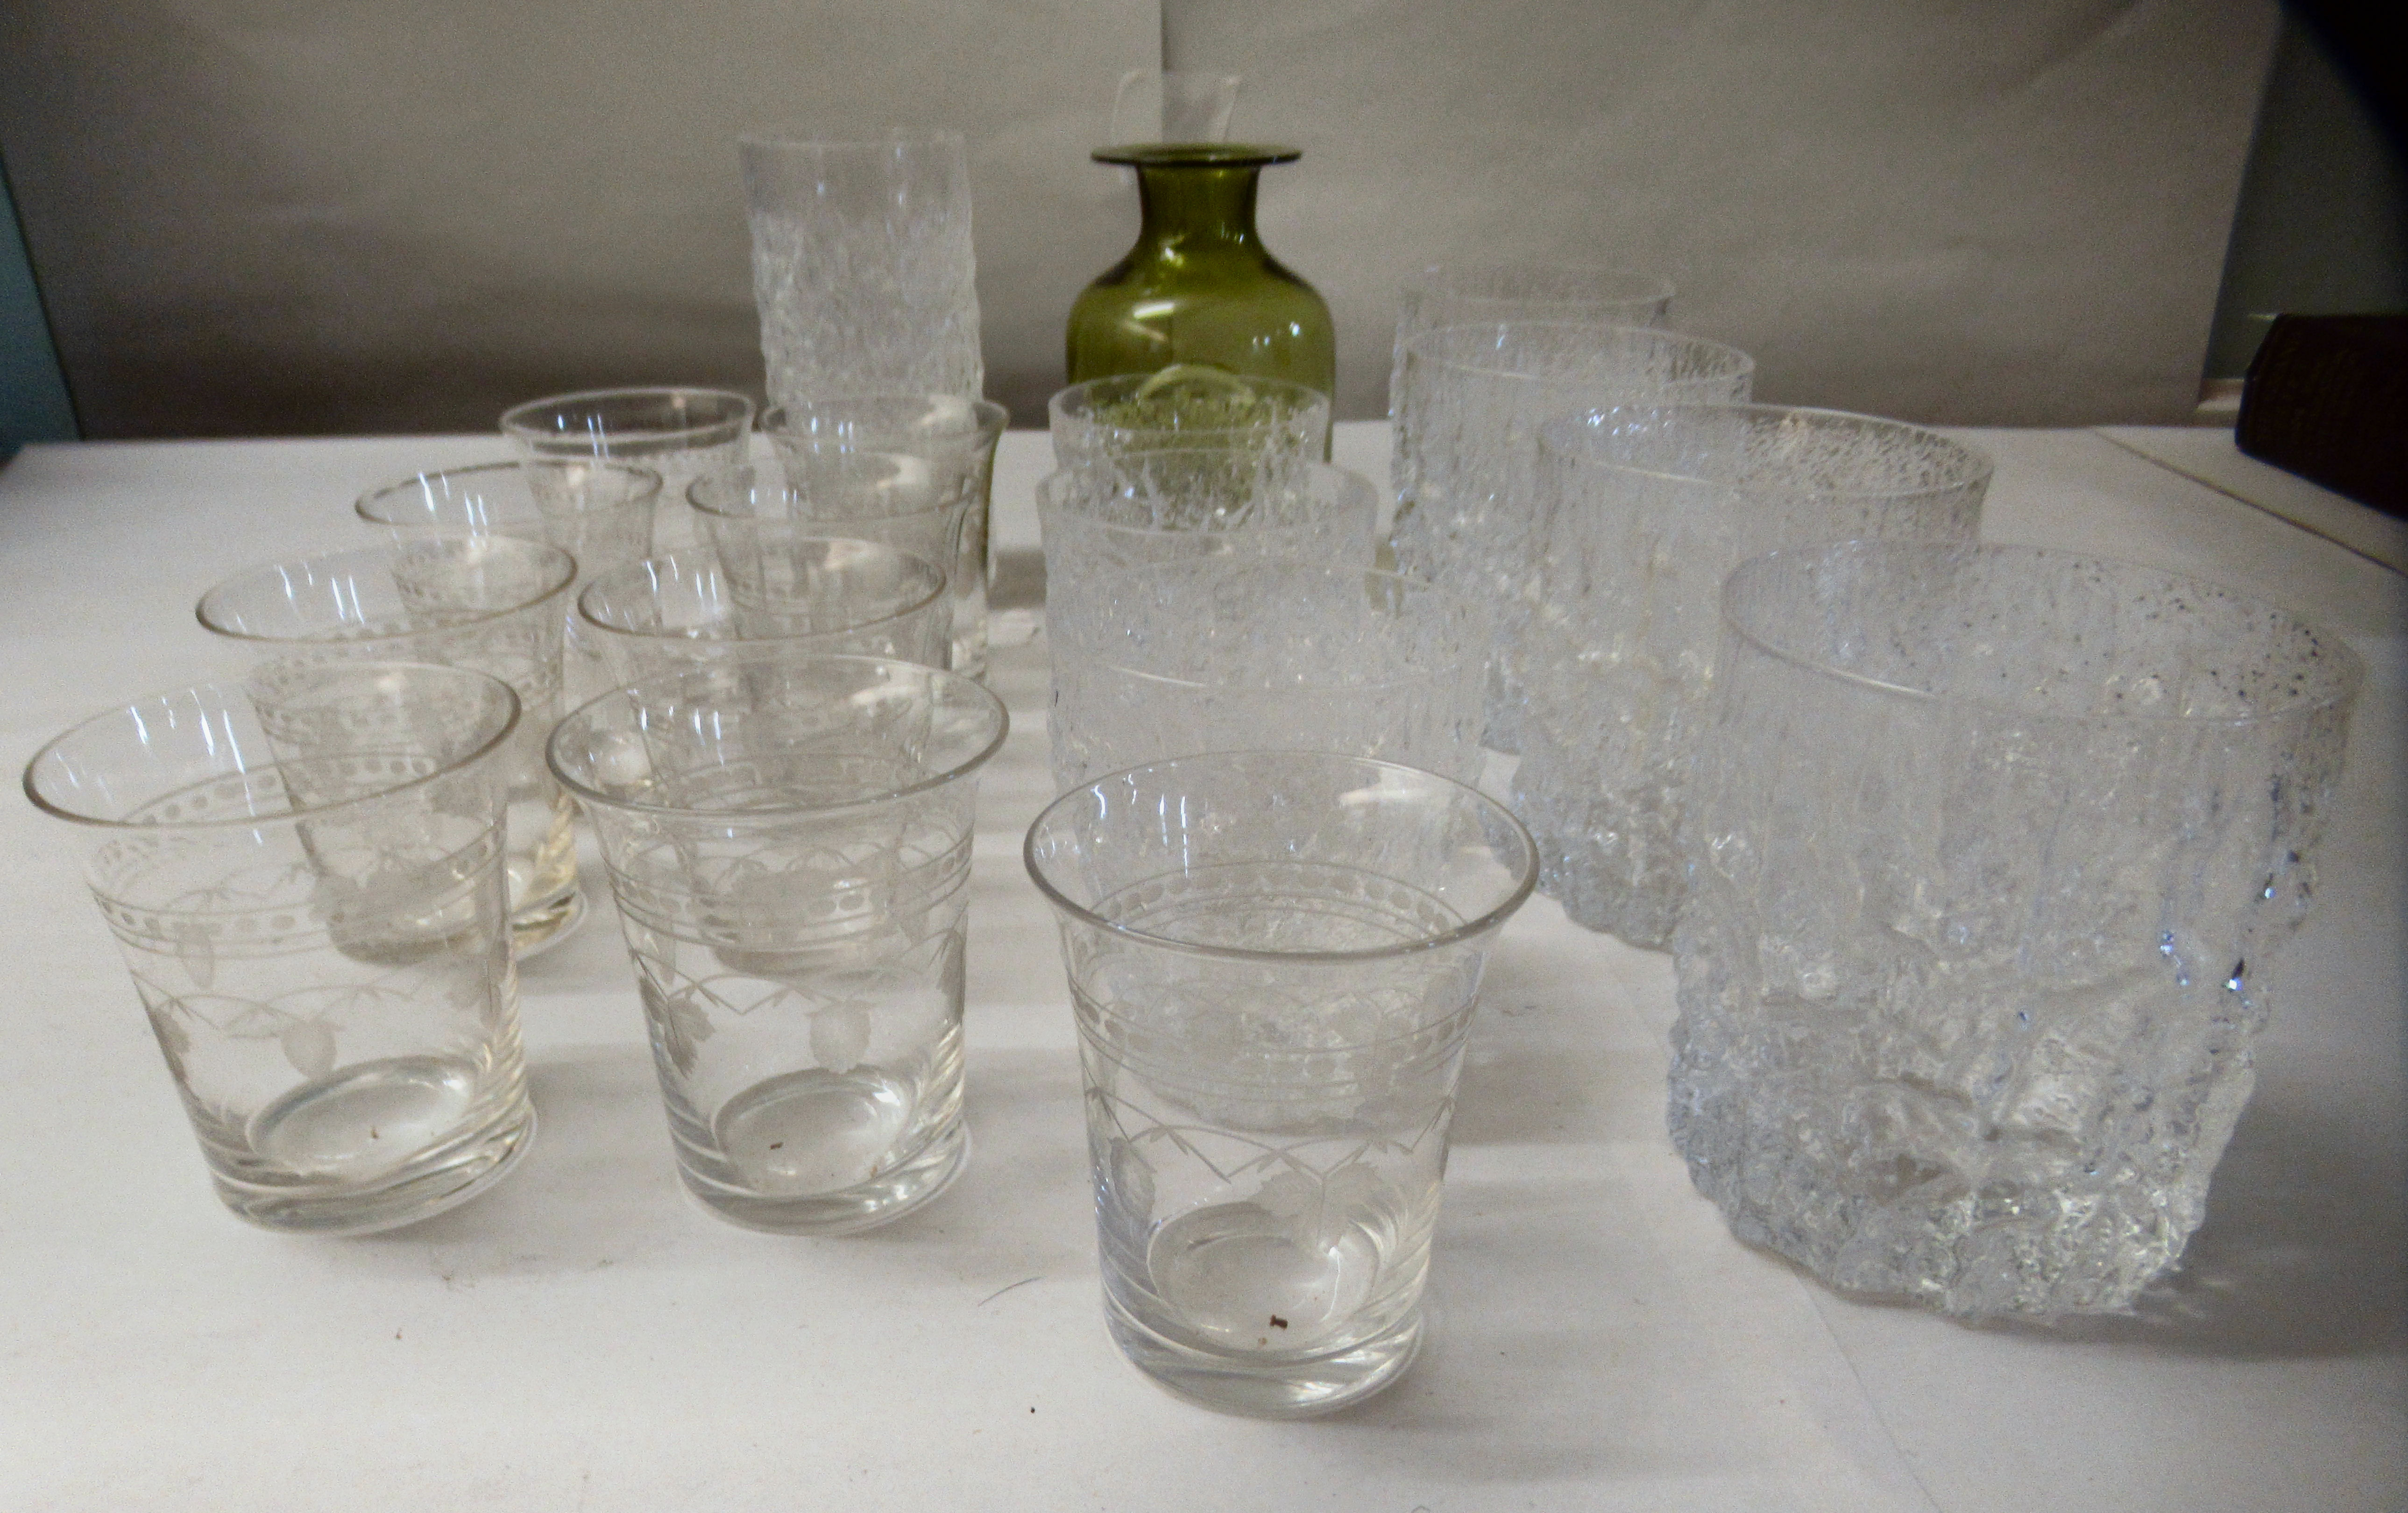 Bark effect Whitefriars cordial and other drinking glasses